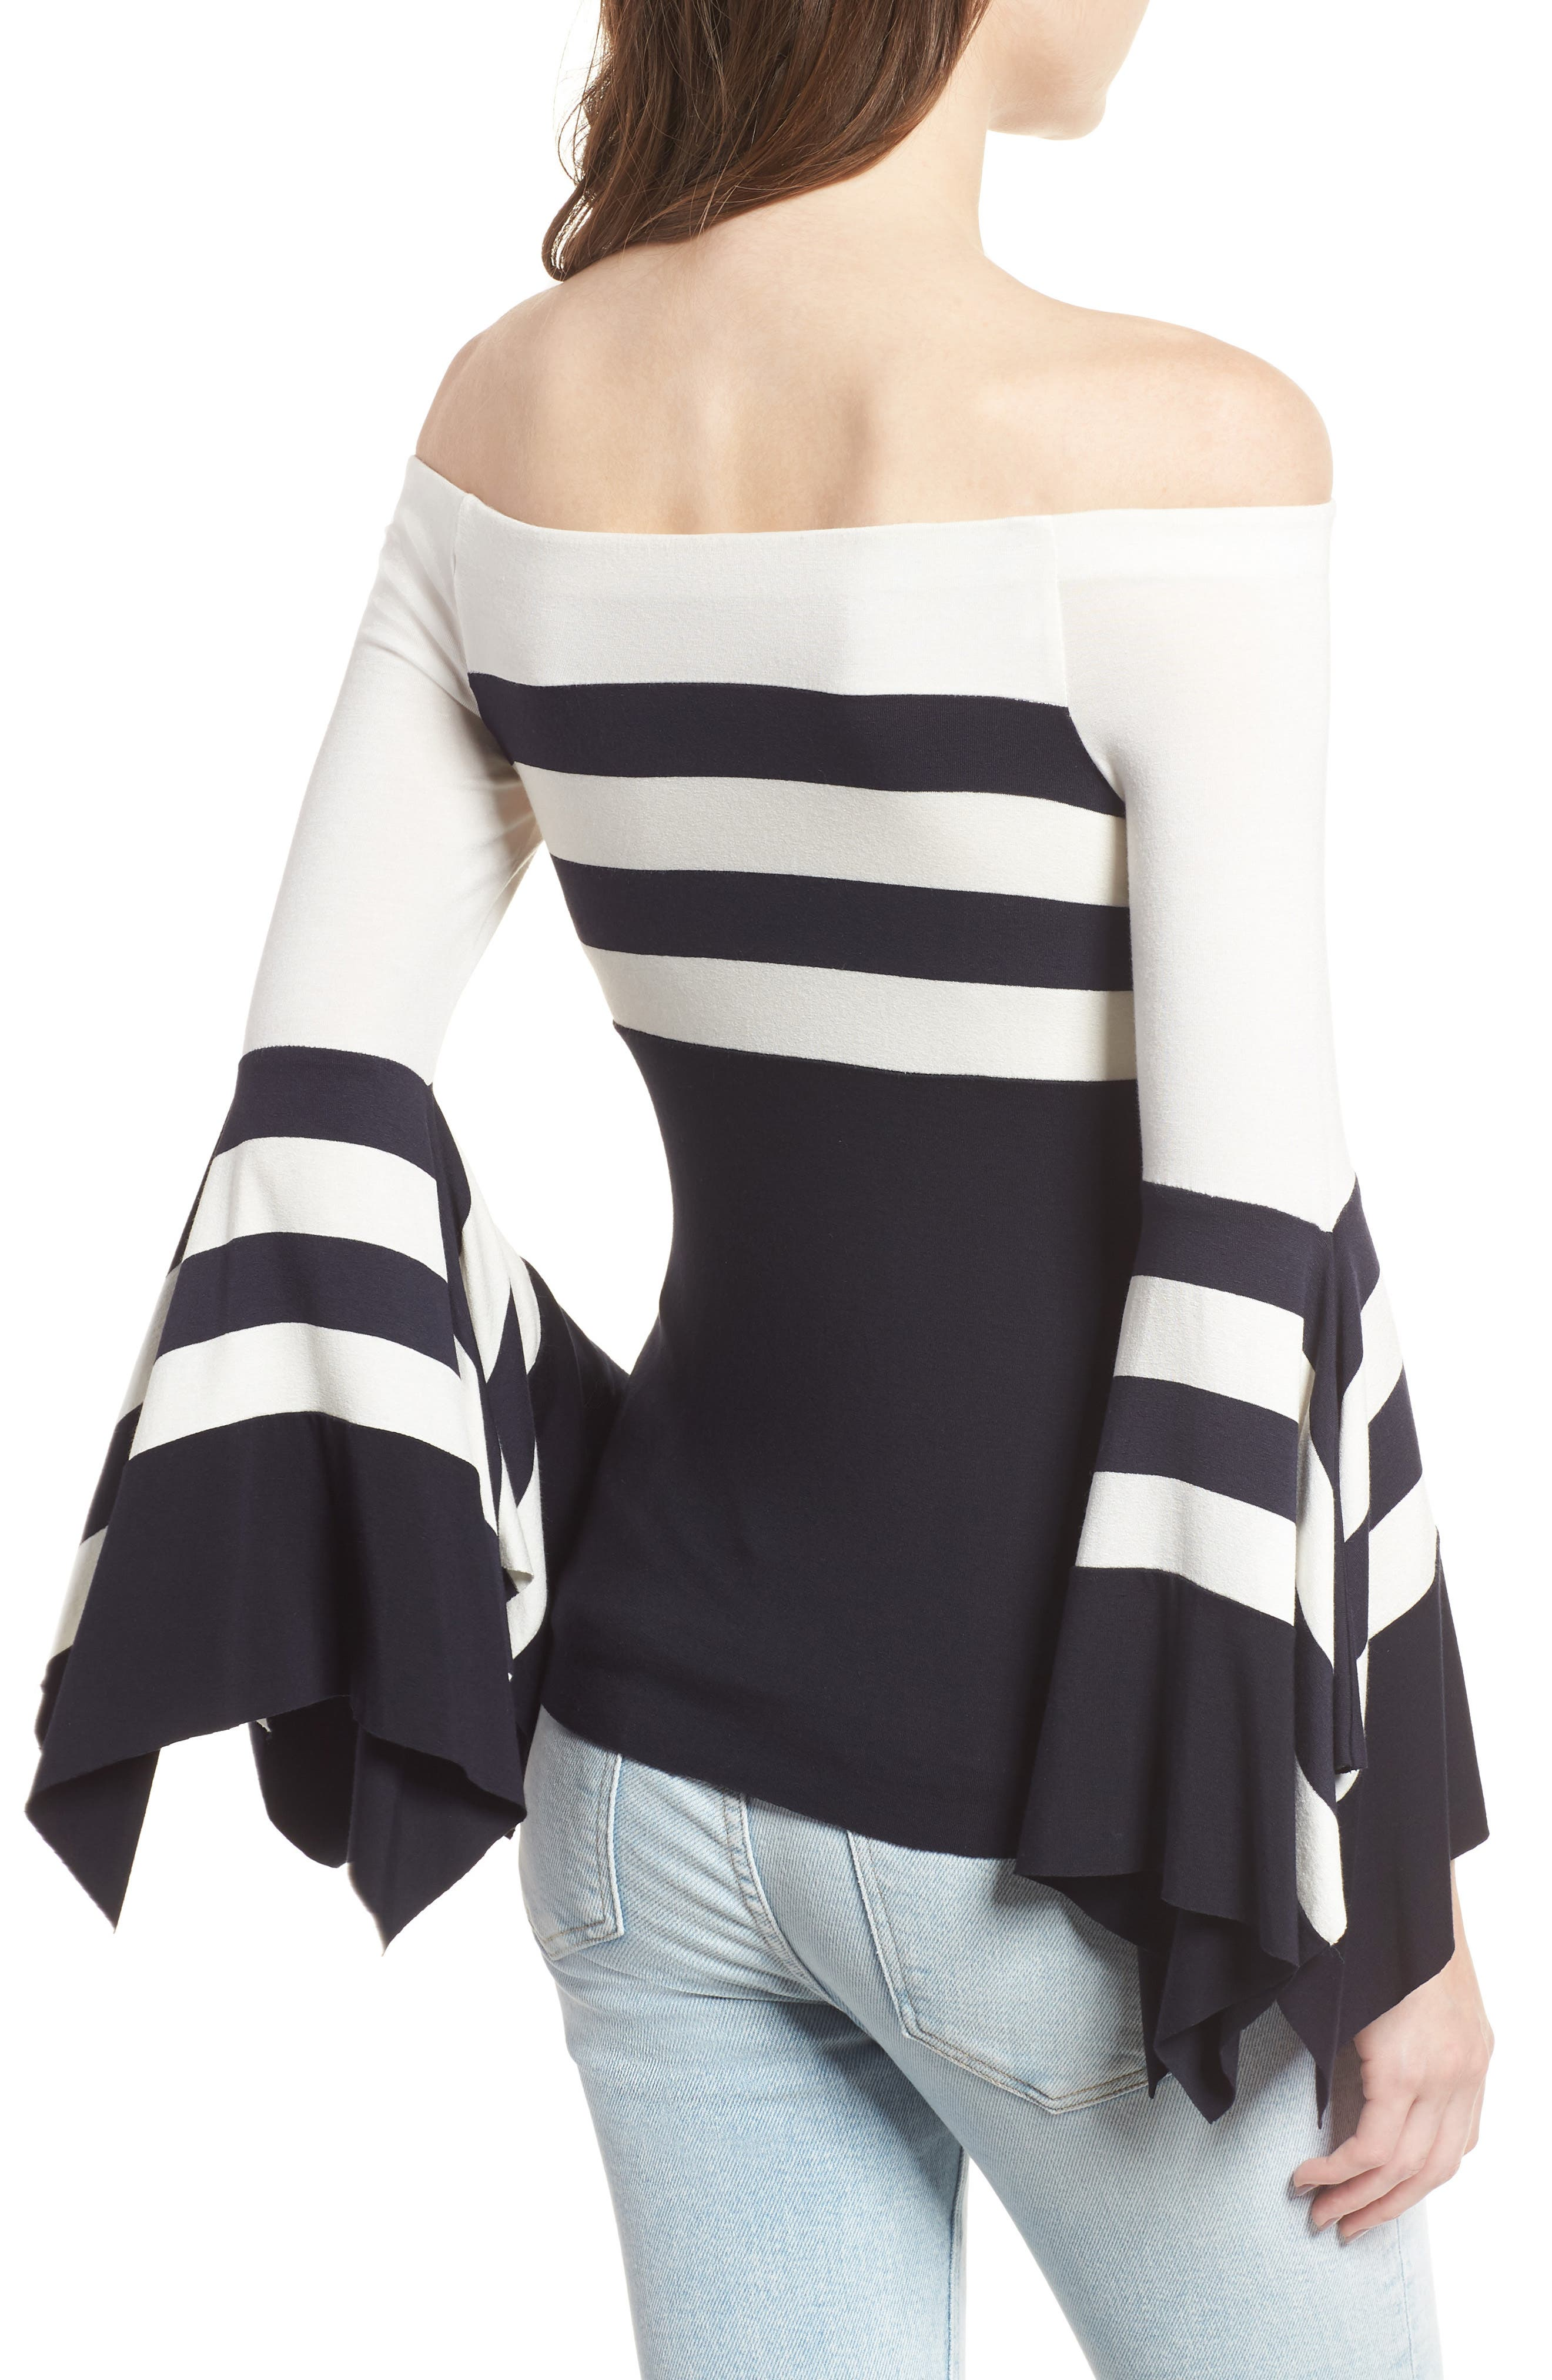 Bluebell Statement Sleeve Off the Shoulder Top,                             Alternate thumbnail 2, color,                             494